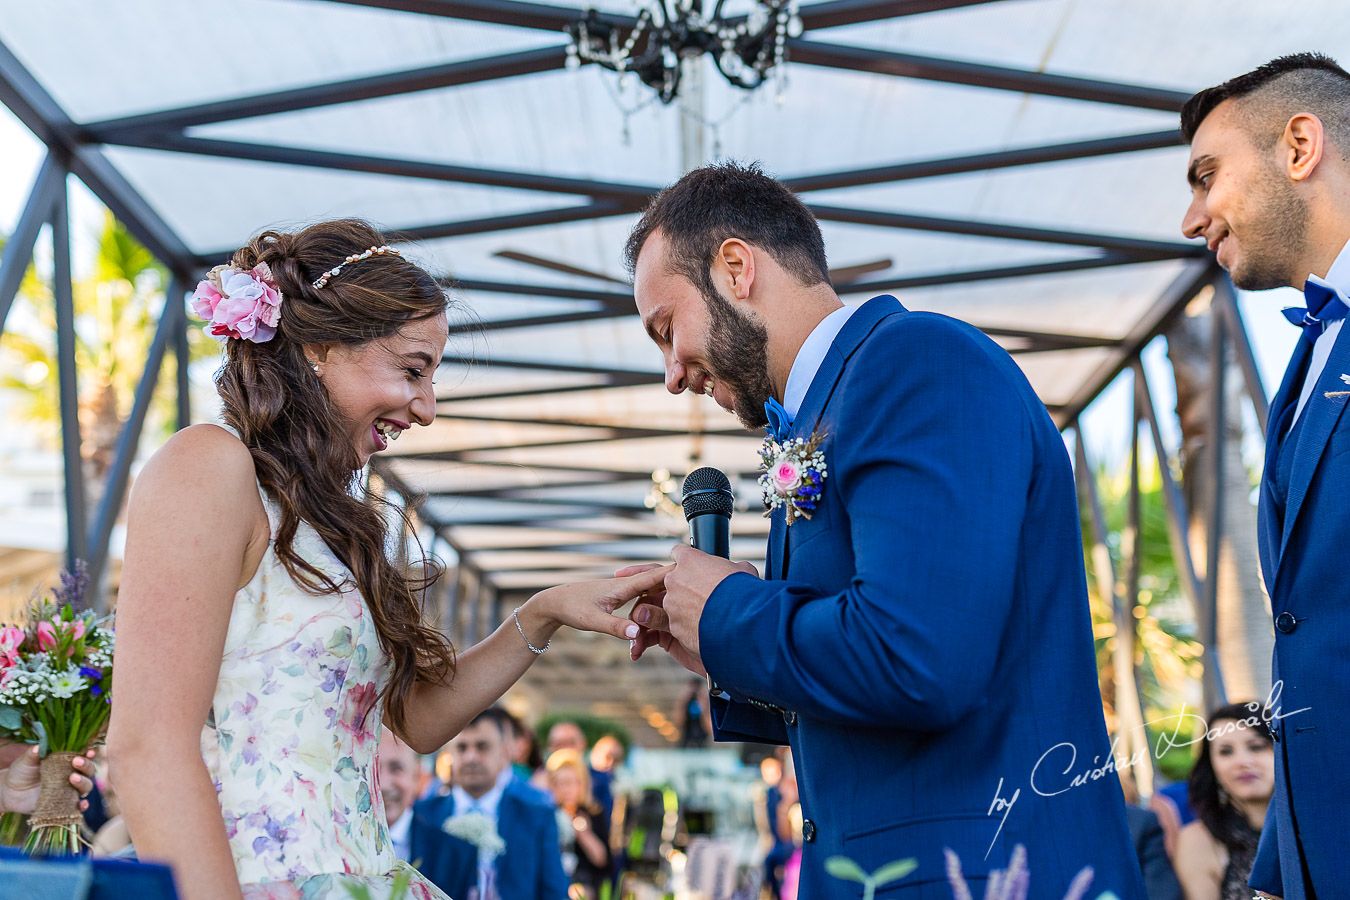 Unique moments with the bride and groom during the ceremony, as part of an Exclusive Wedding photography at Grand Resort Limassol, captured by Cyprus Wedding Photographer Cristian Dascalu.